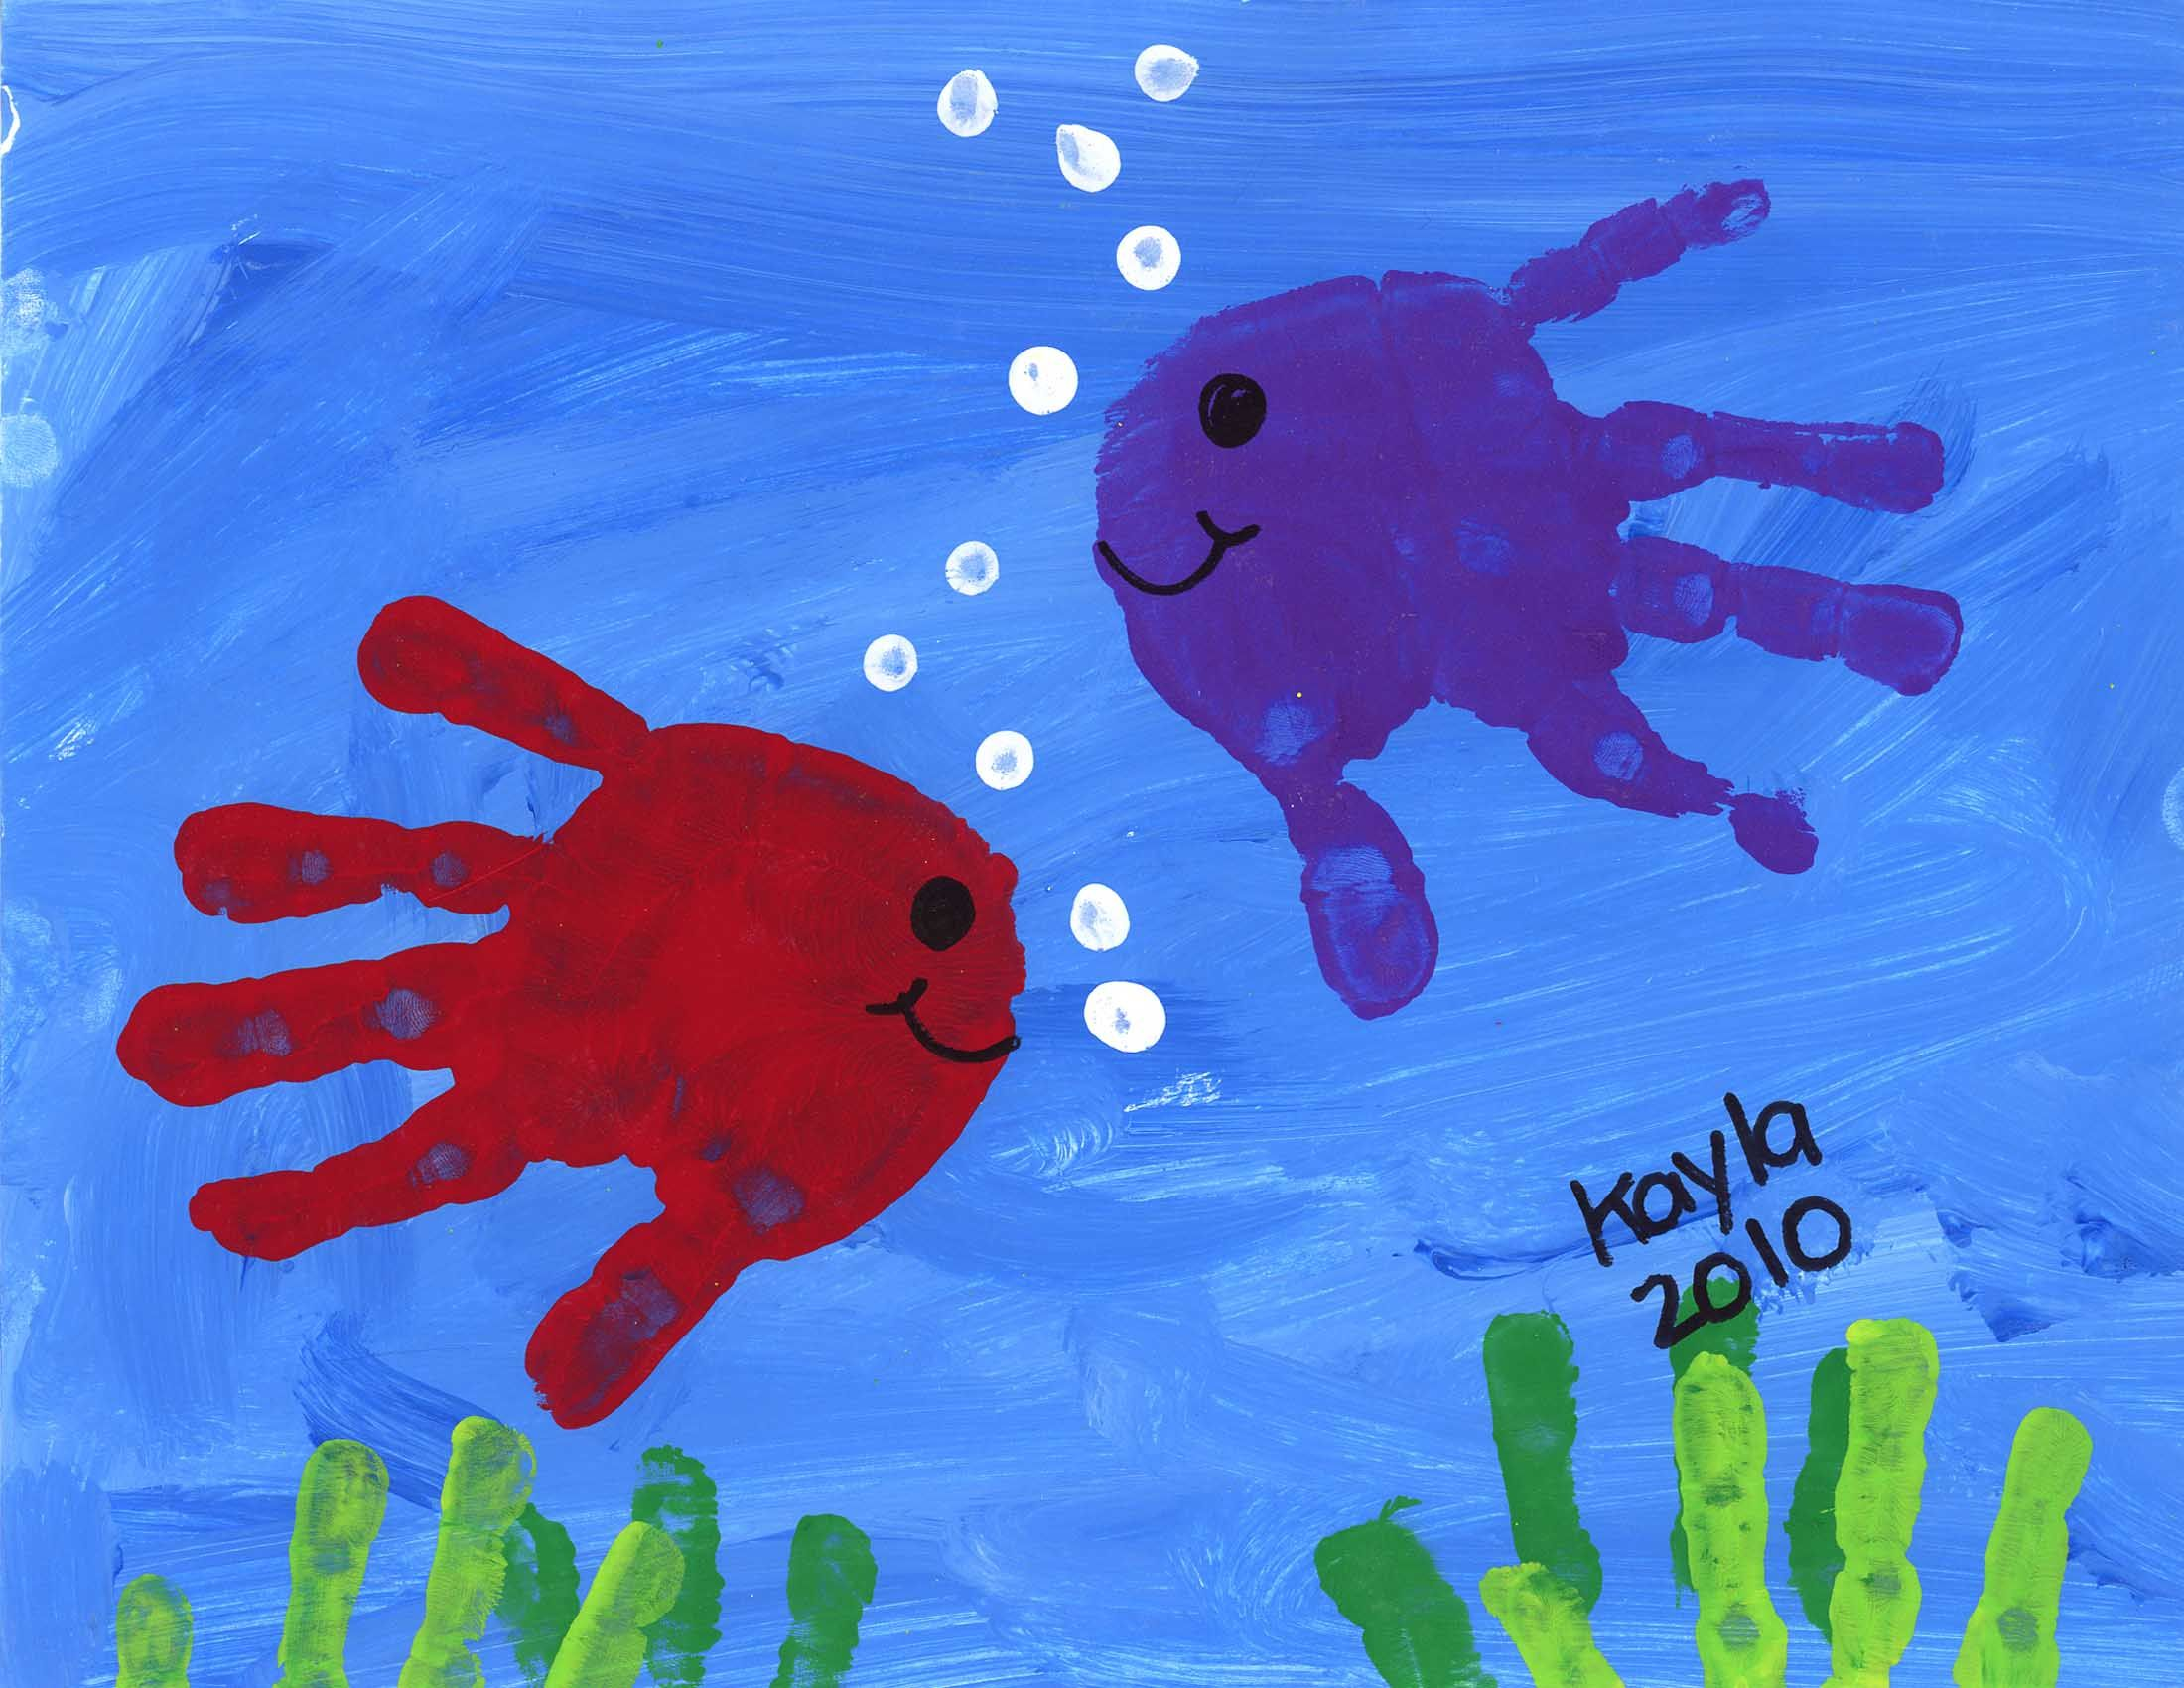 Hand print fish best selling artwork pinterest hand for Hand and feet painting ideas